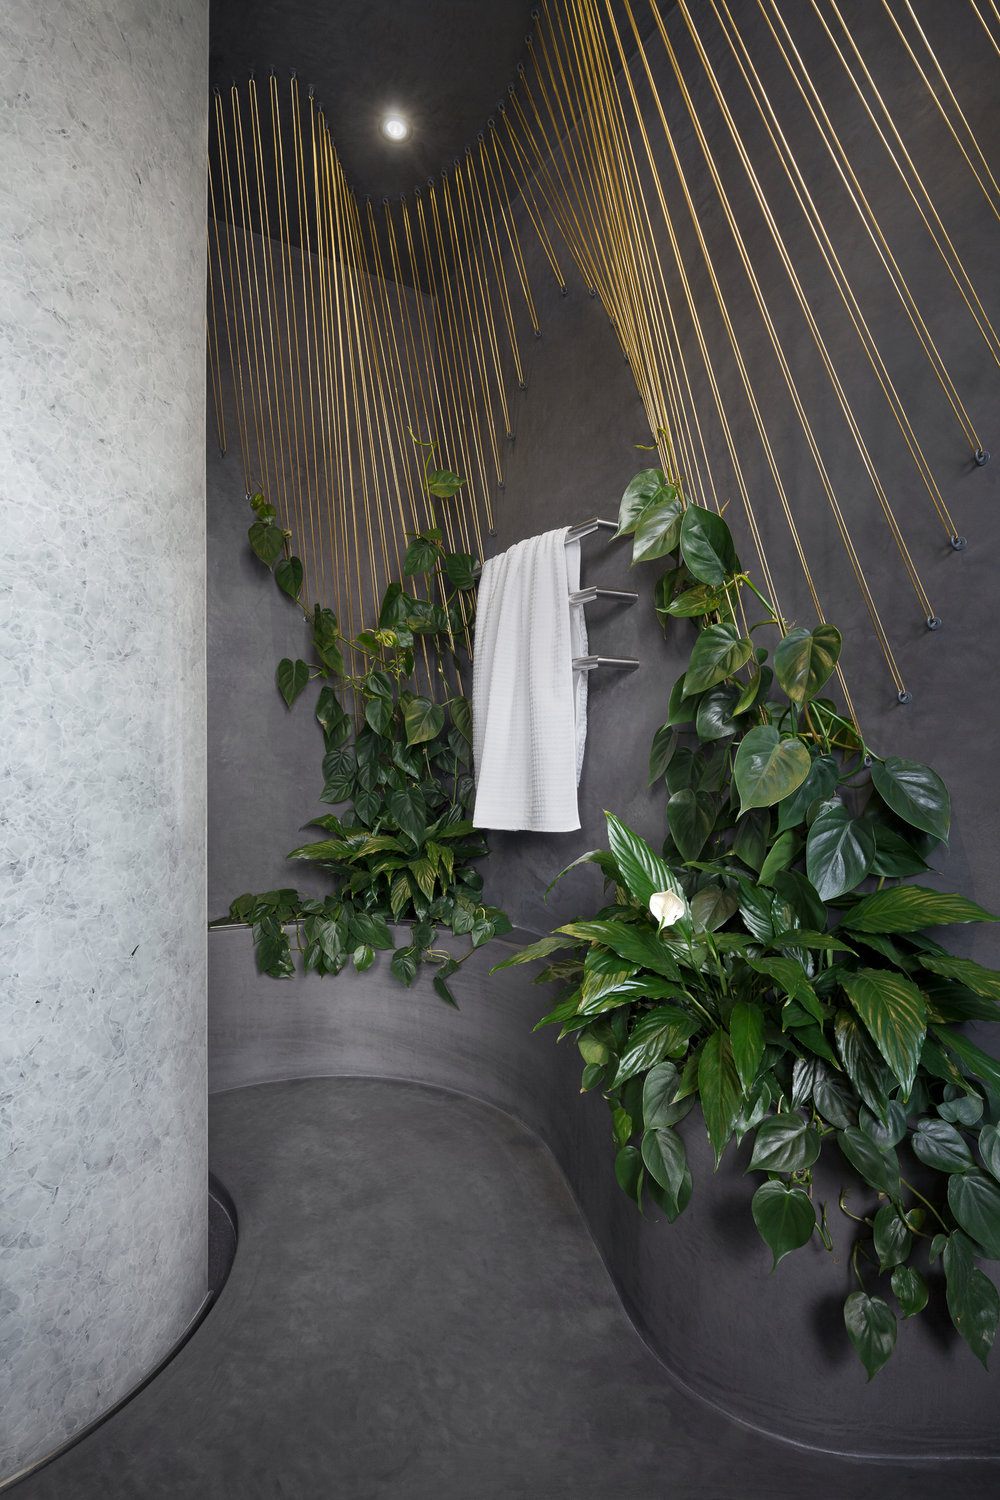 Air-filtering plants improve indoor climate.